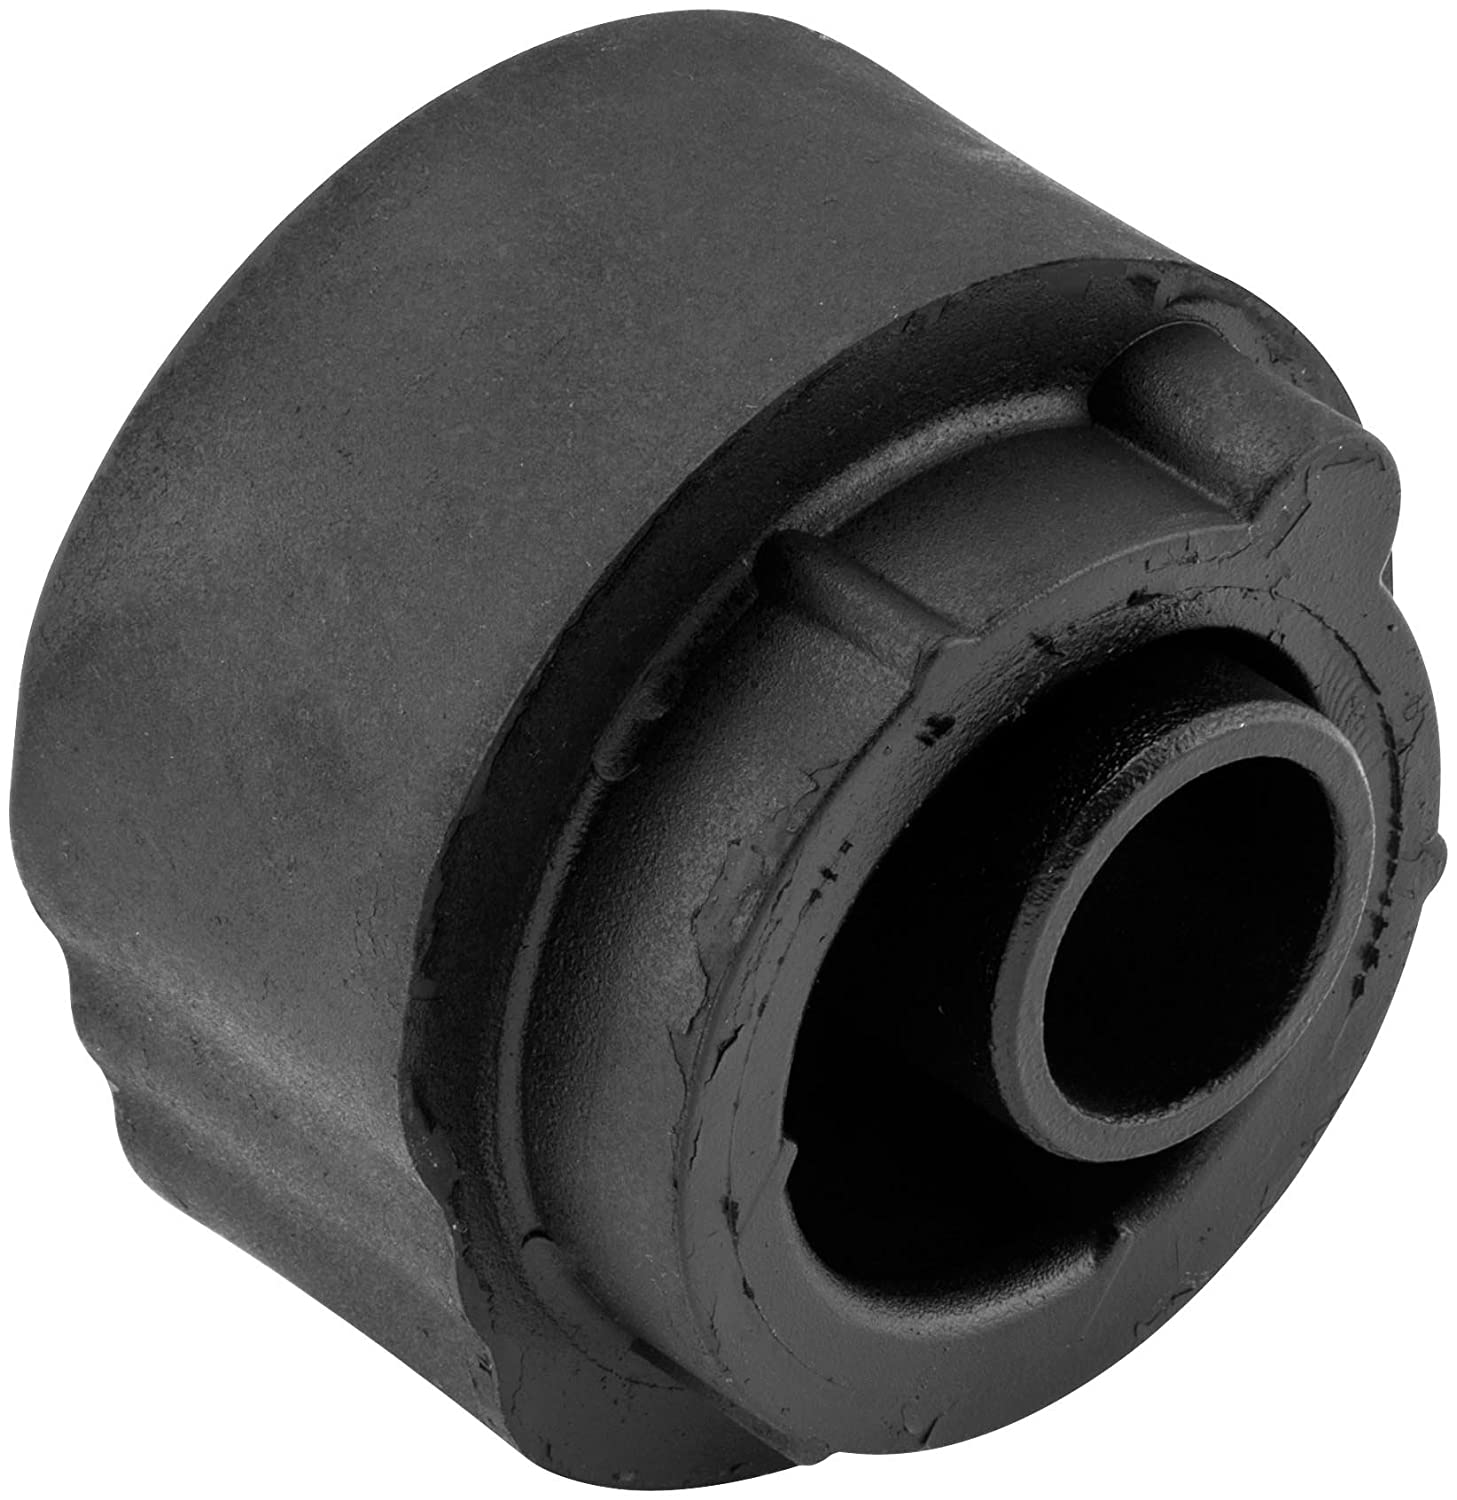 Twin Power Motor Mount Bushing - Front 032568 LEPAZA6929